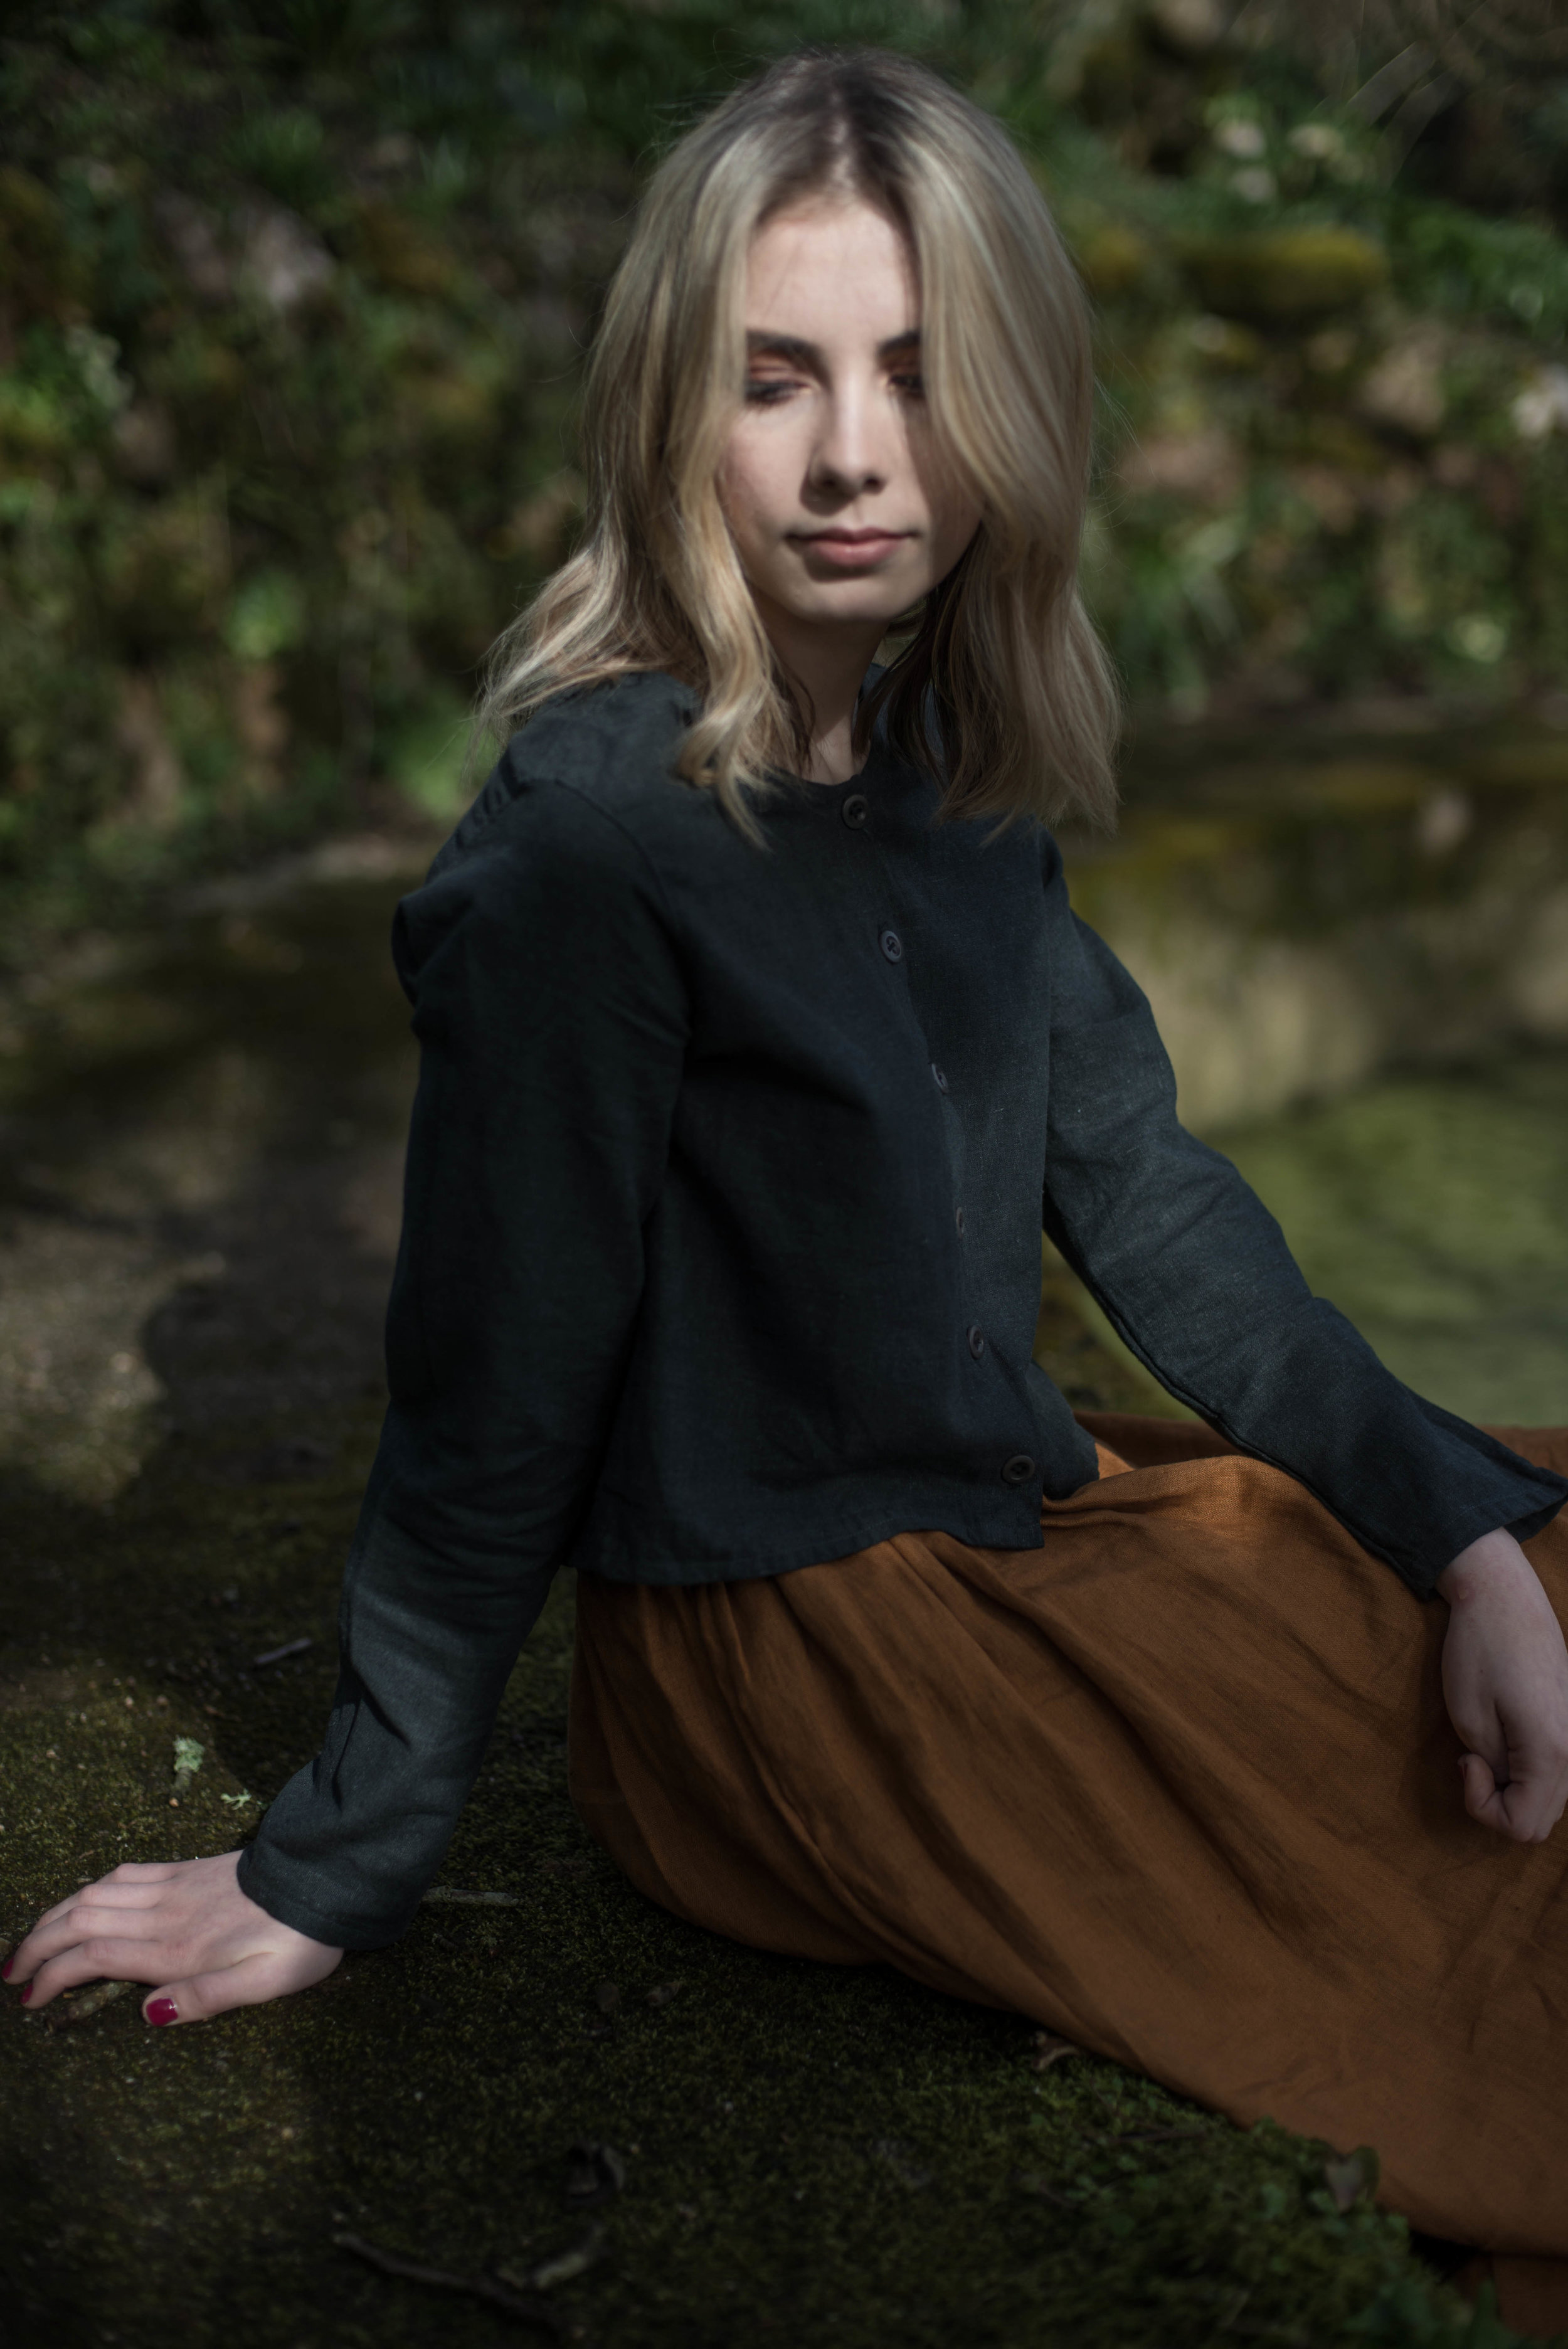 Rosie wearing the ATHENA TOP in charcoal and the ITHACA SKIRT in ochre.